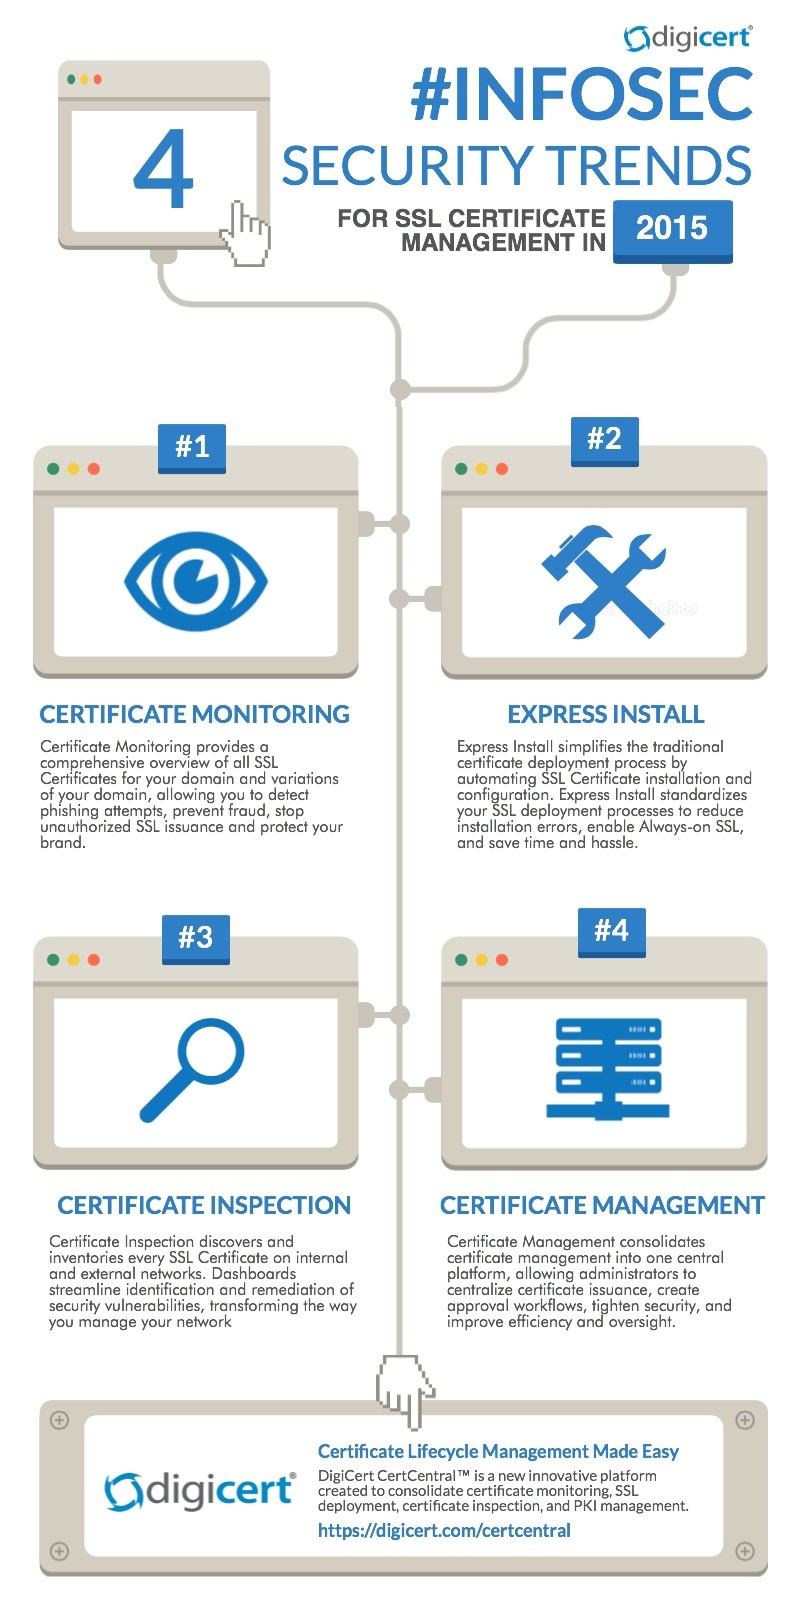 Infographic infosec security trends in 2015 digicert blog take a look at security trends for ssl certificate management this year xflitez Image collections